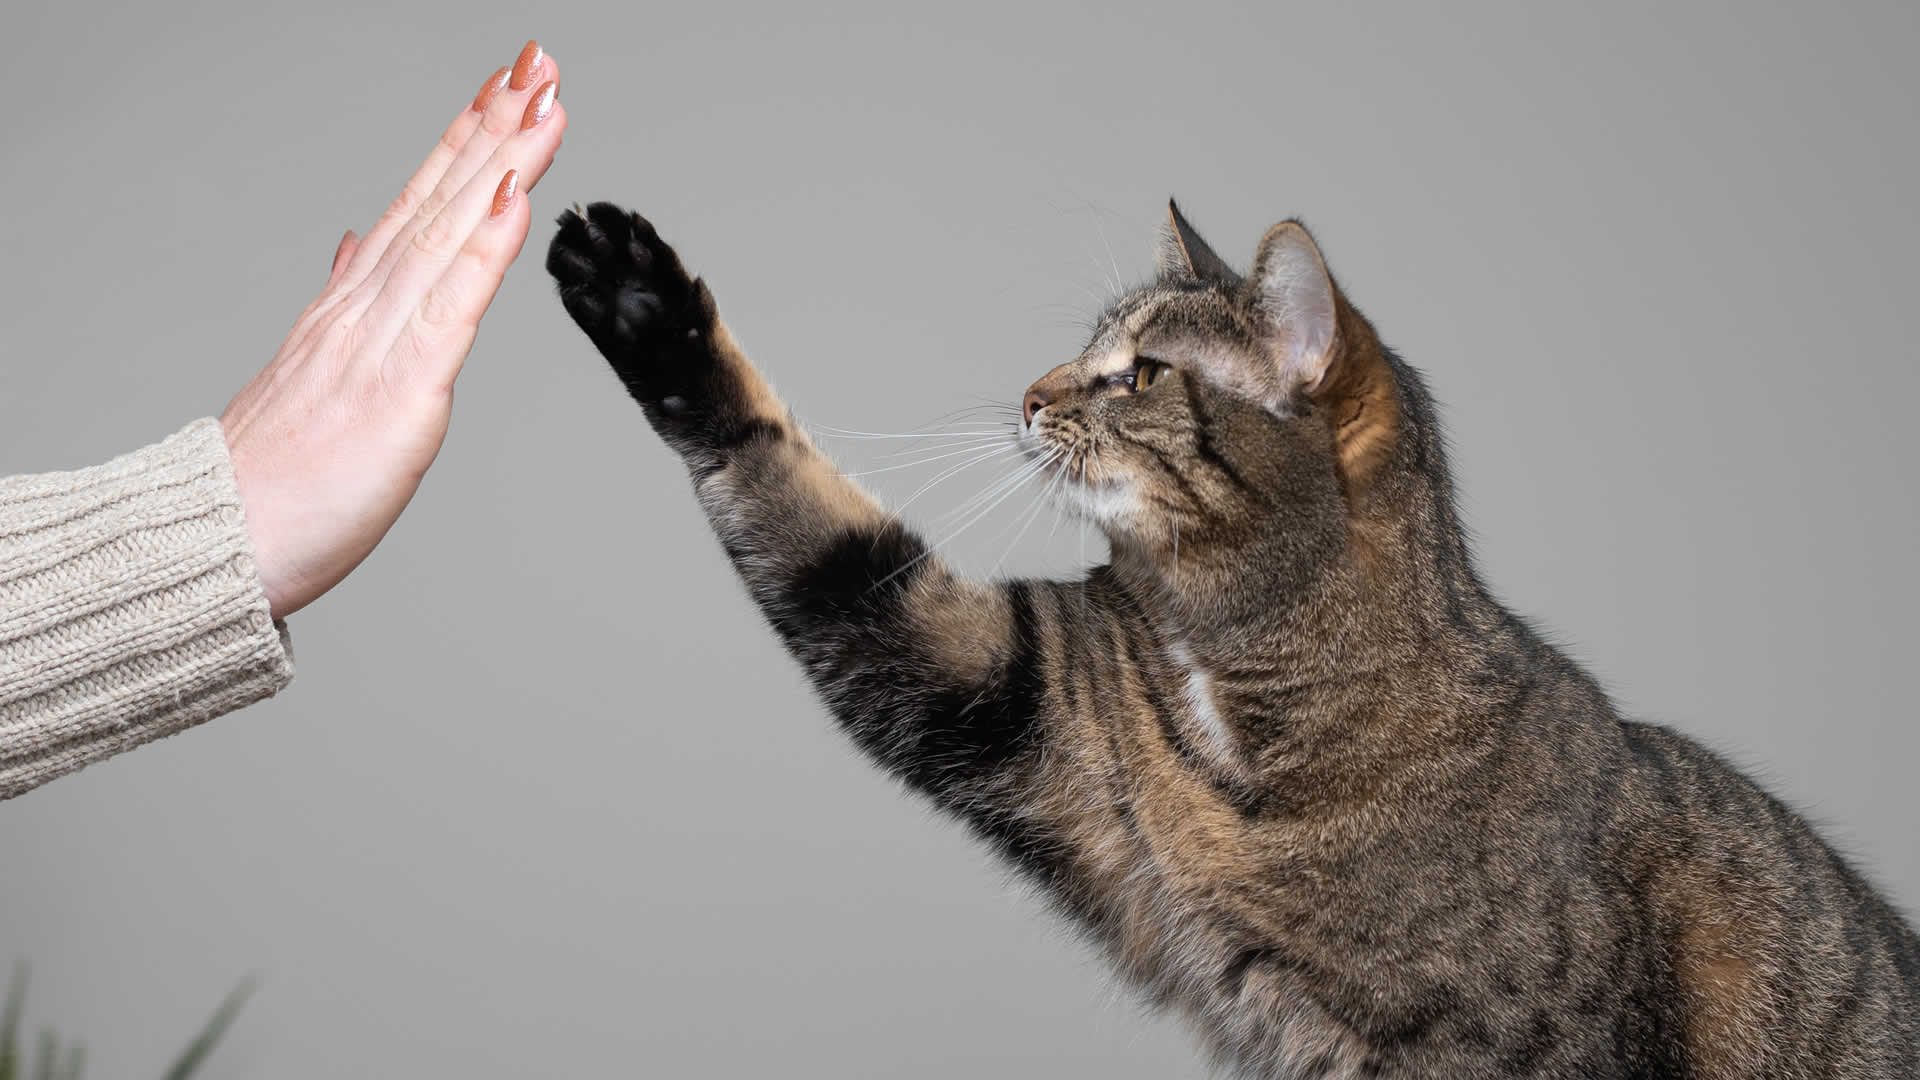 Training cat to high-five